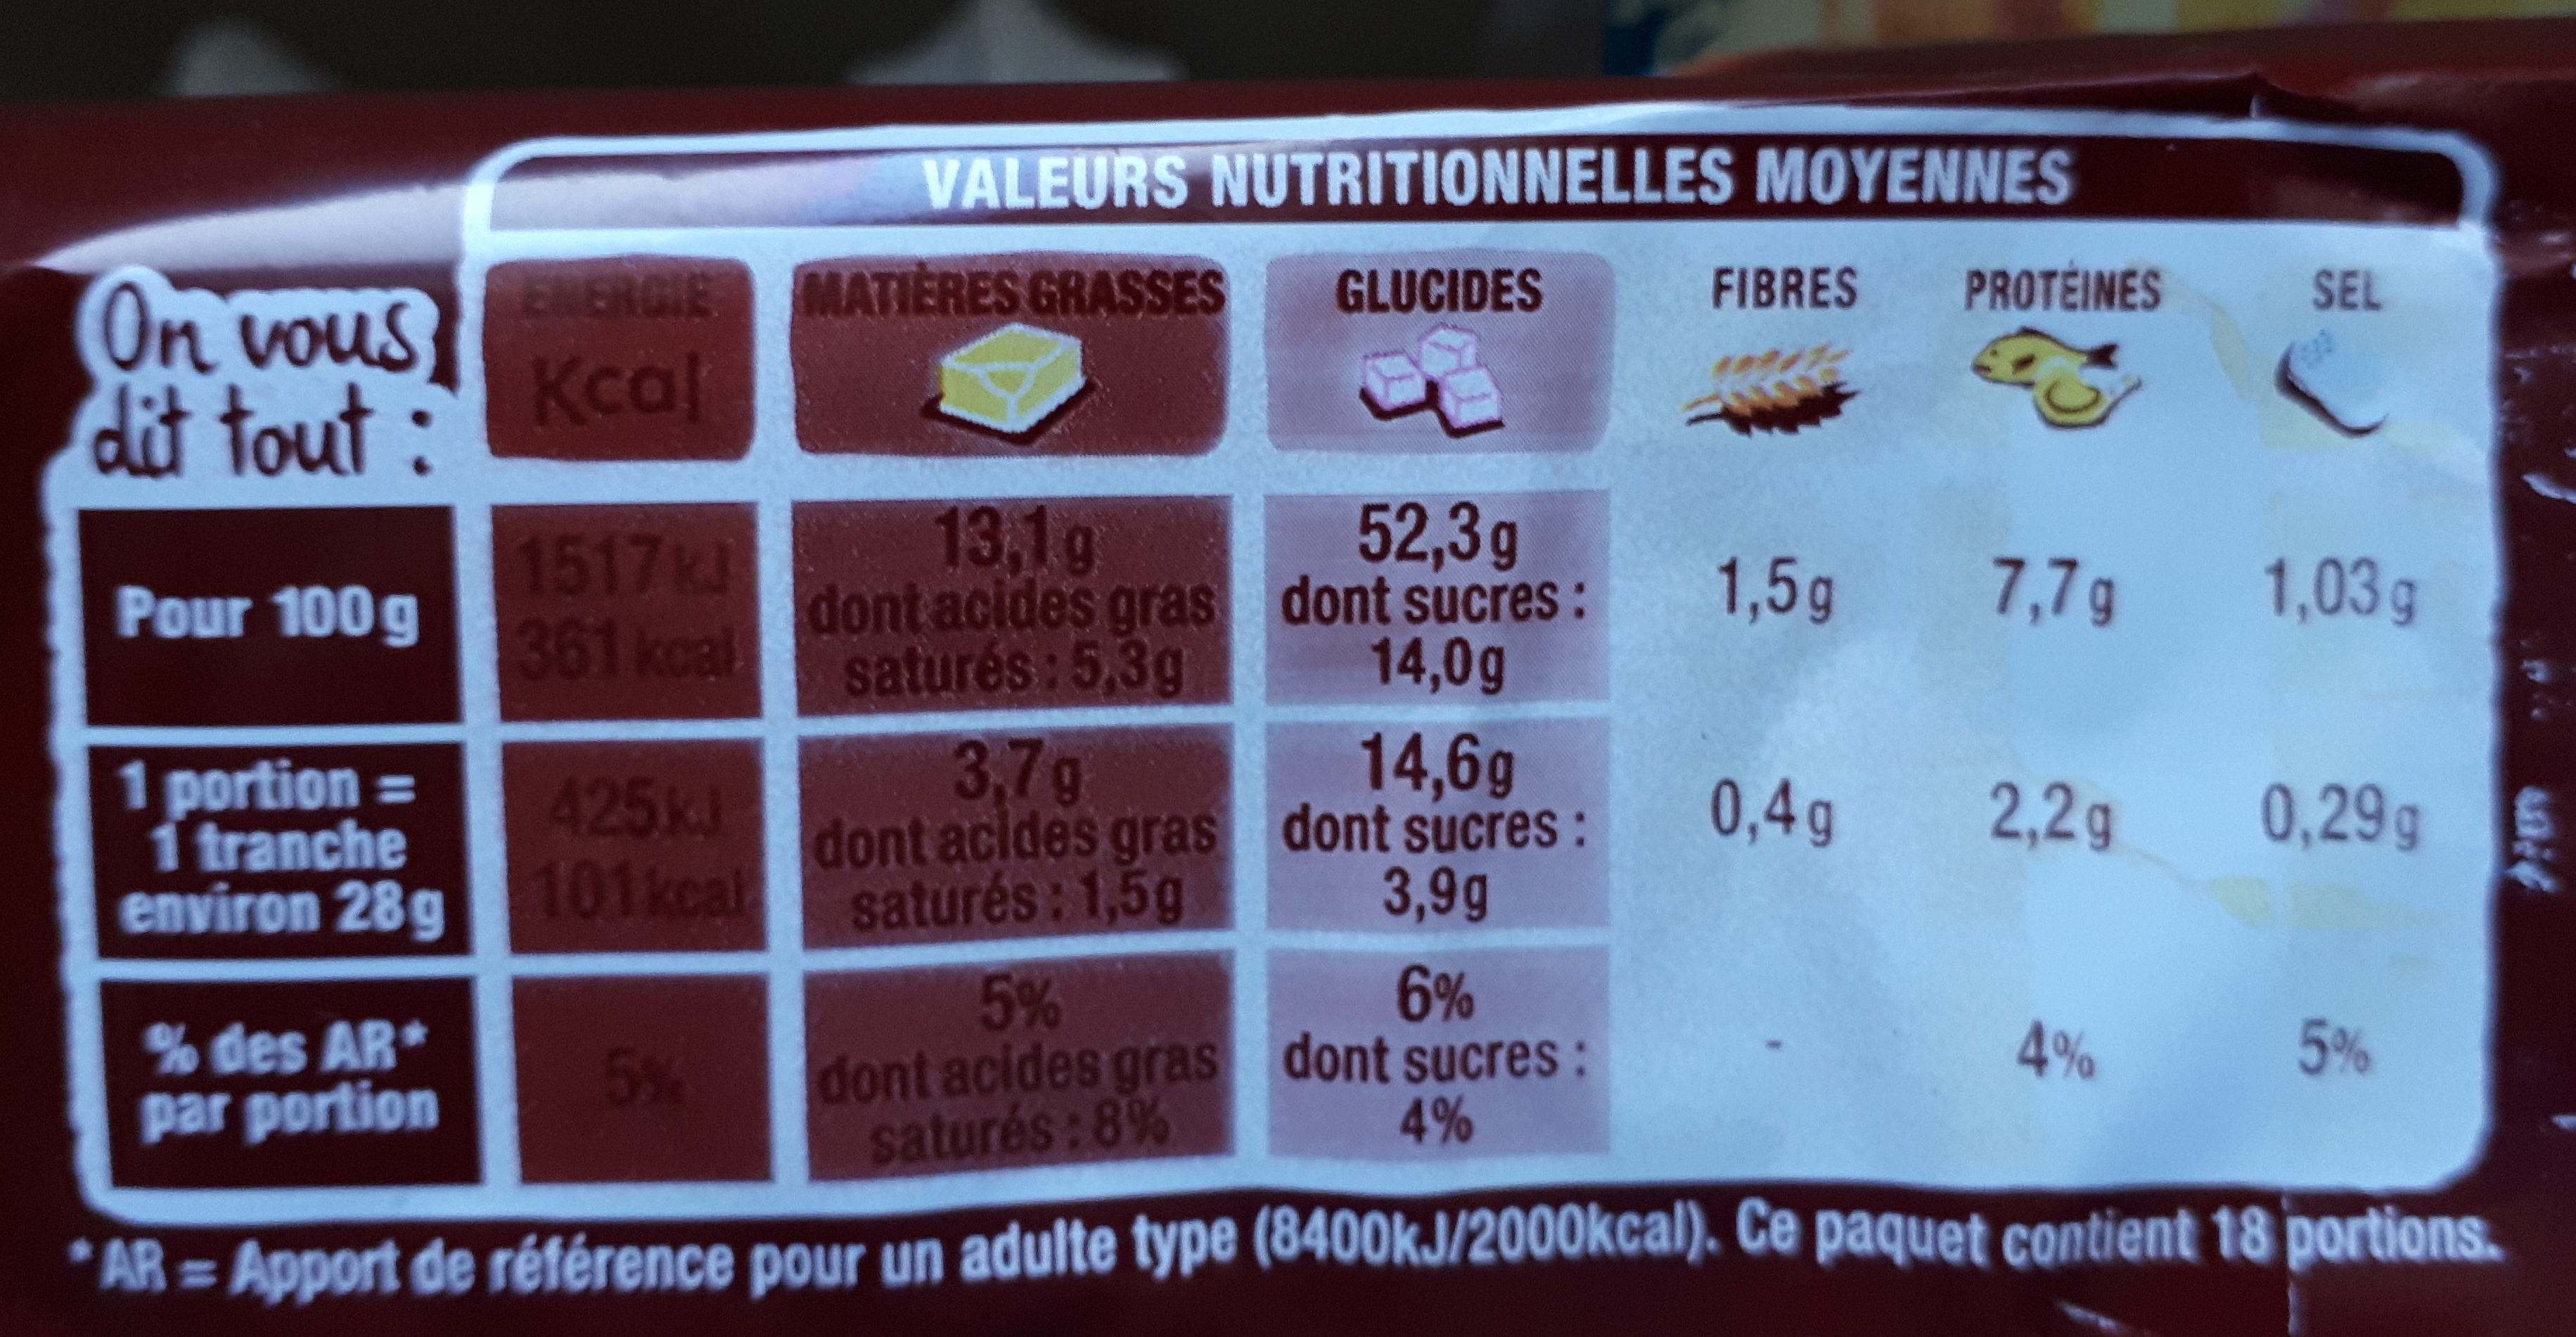 Lot 2 brioches tranchées nature - Nutrition facts - fr